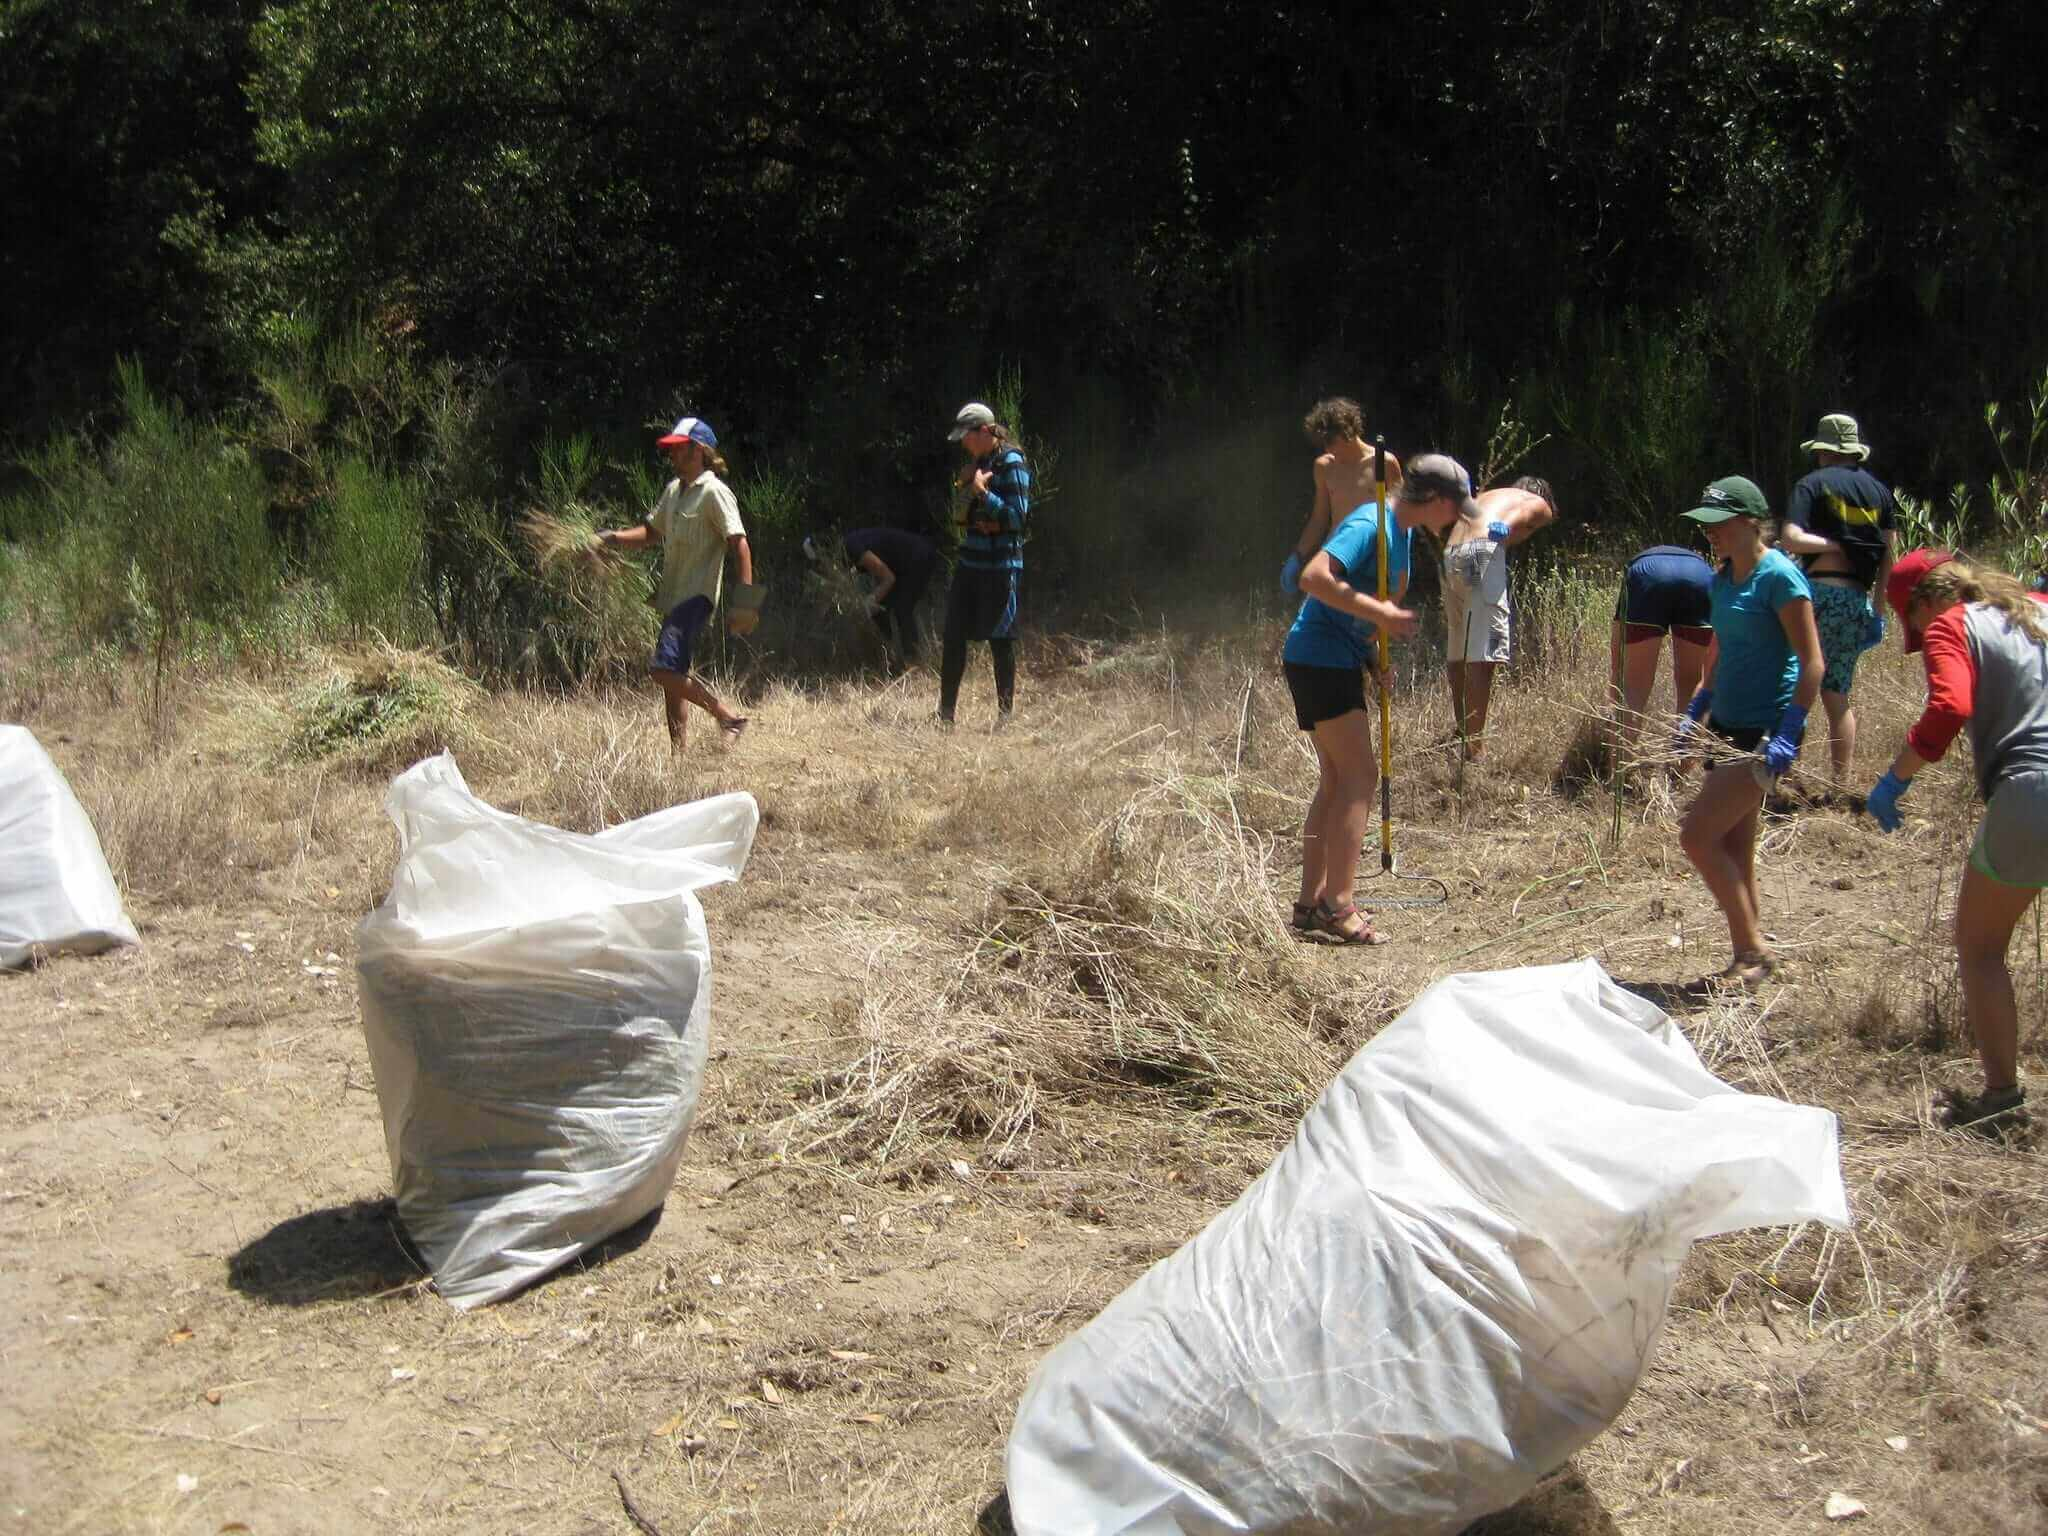 teens pick up trash and fill bags in field